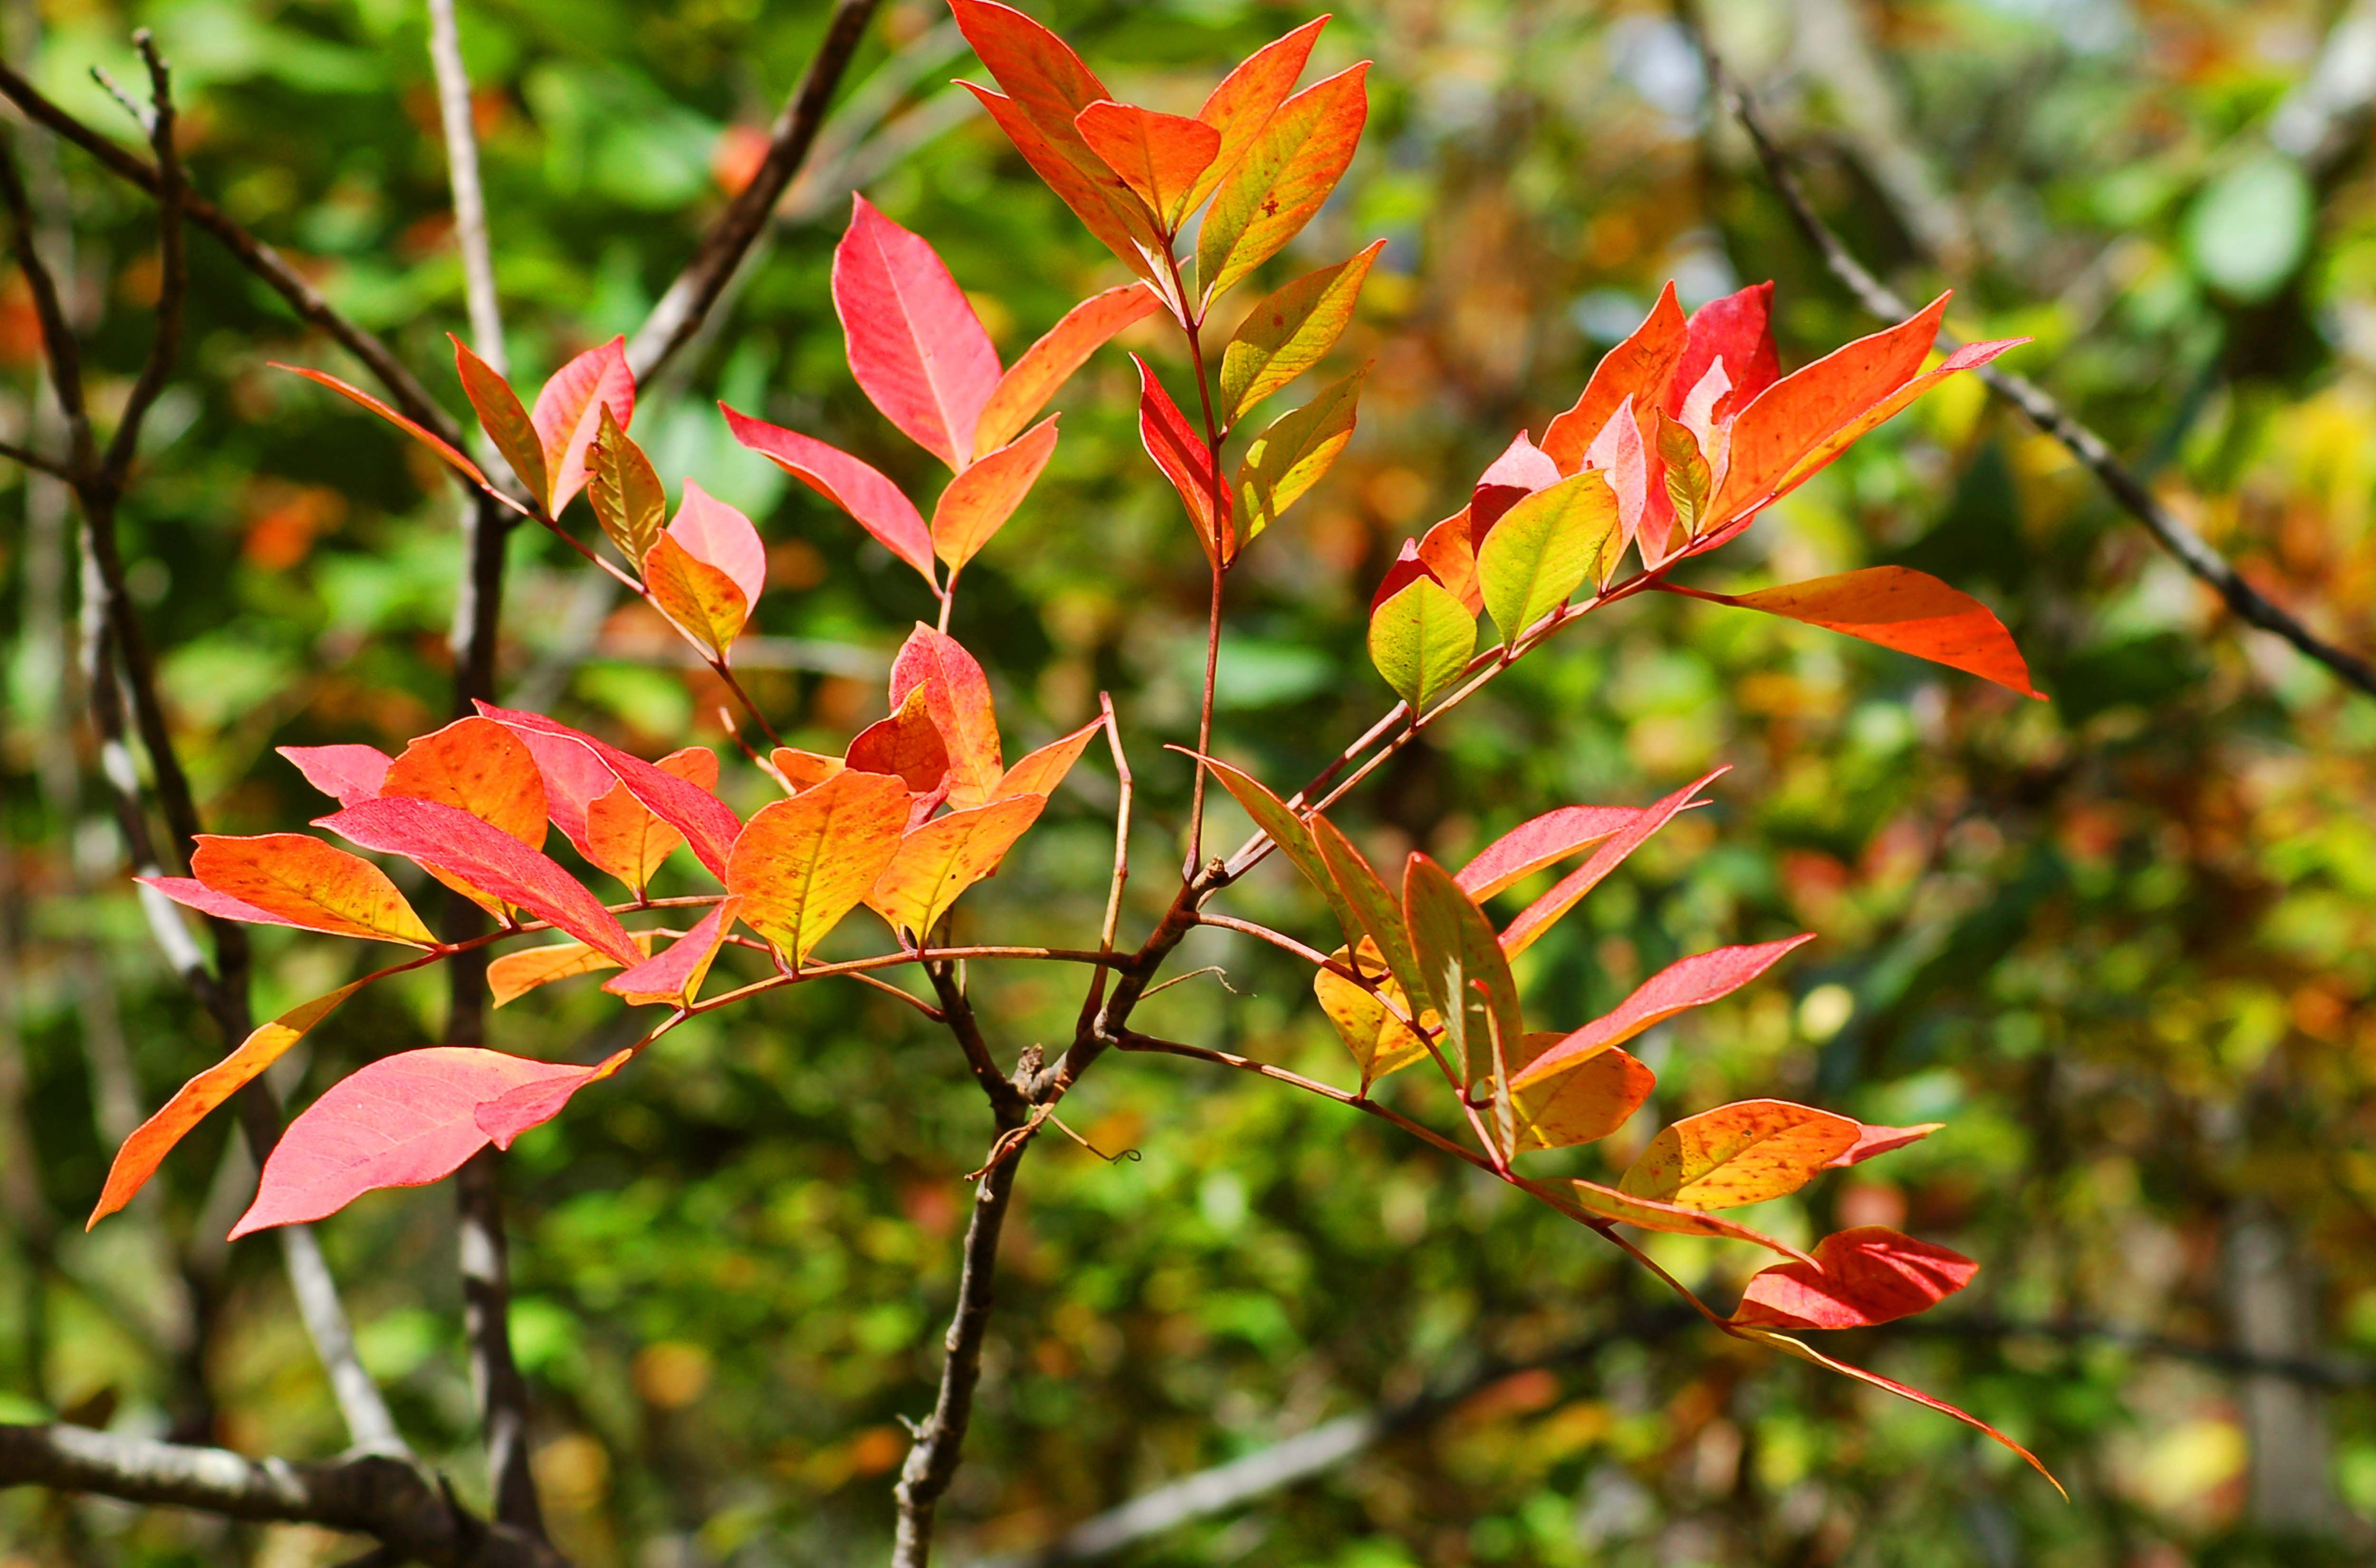 Fall foliage of poison sumac in mixed colors.